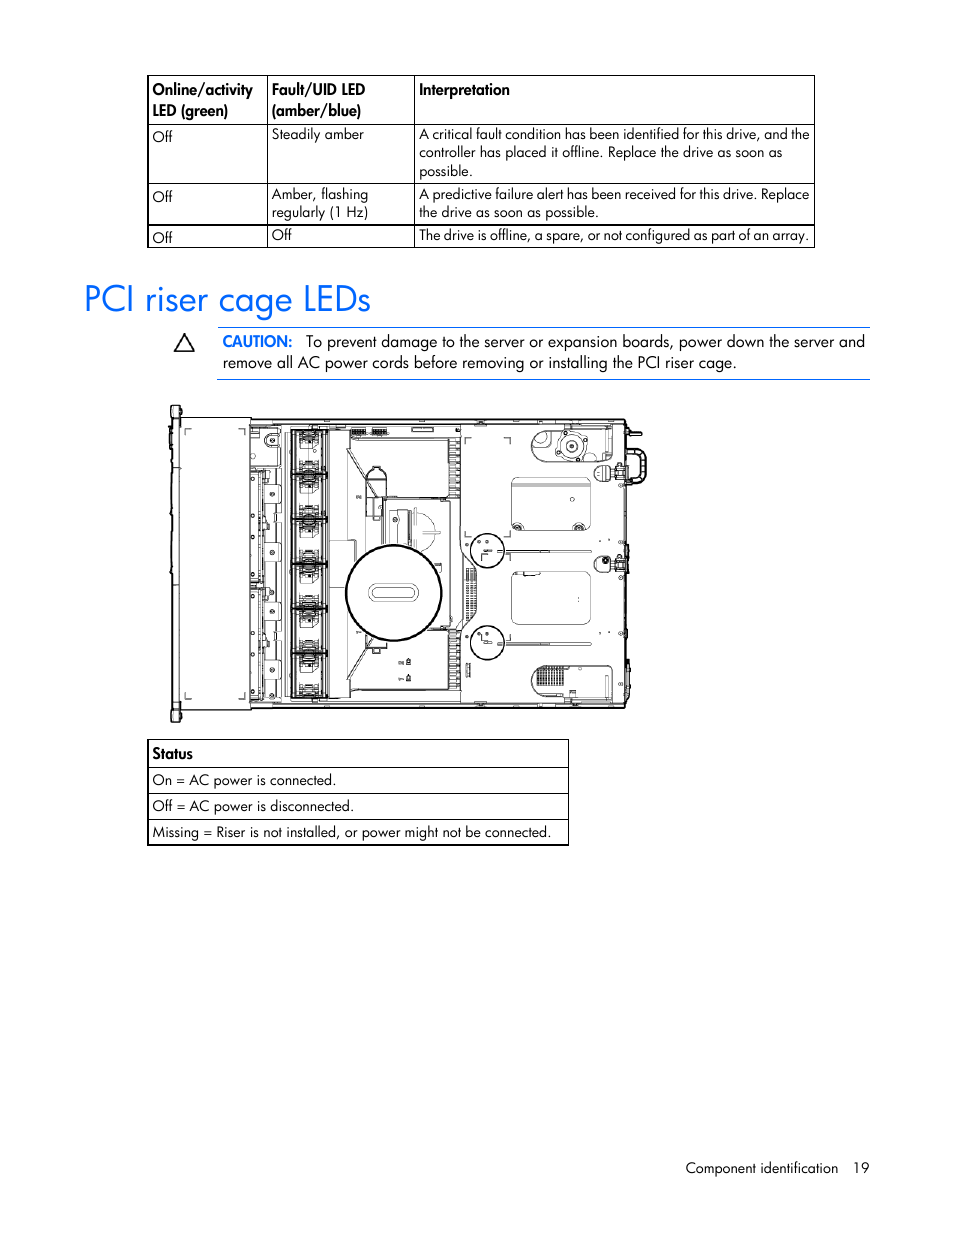 Pci riser cage leds | HP ProLiant DL380 G7 Server User Manual | Page